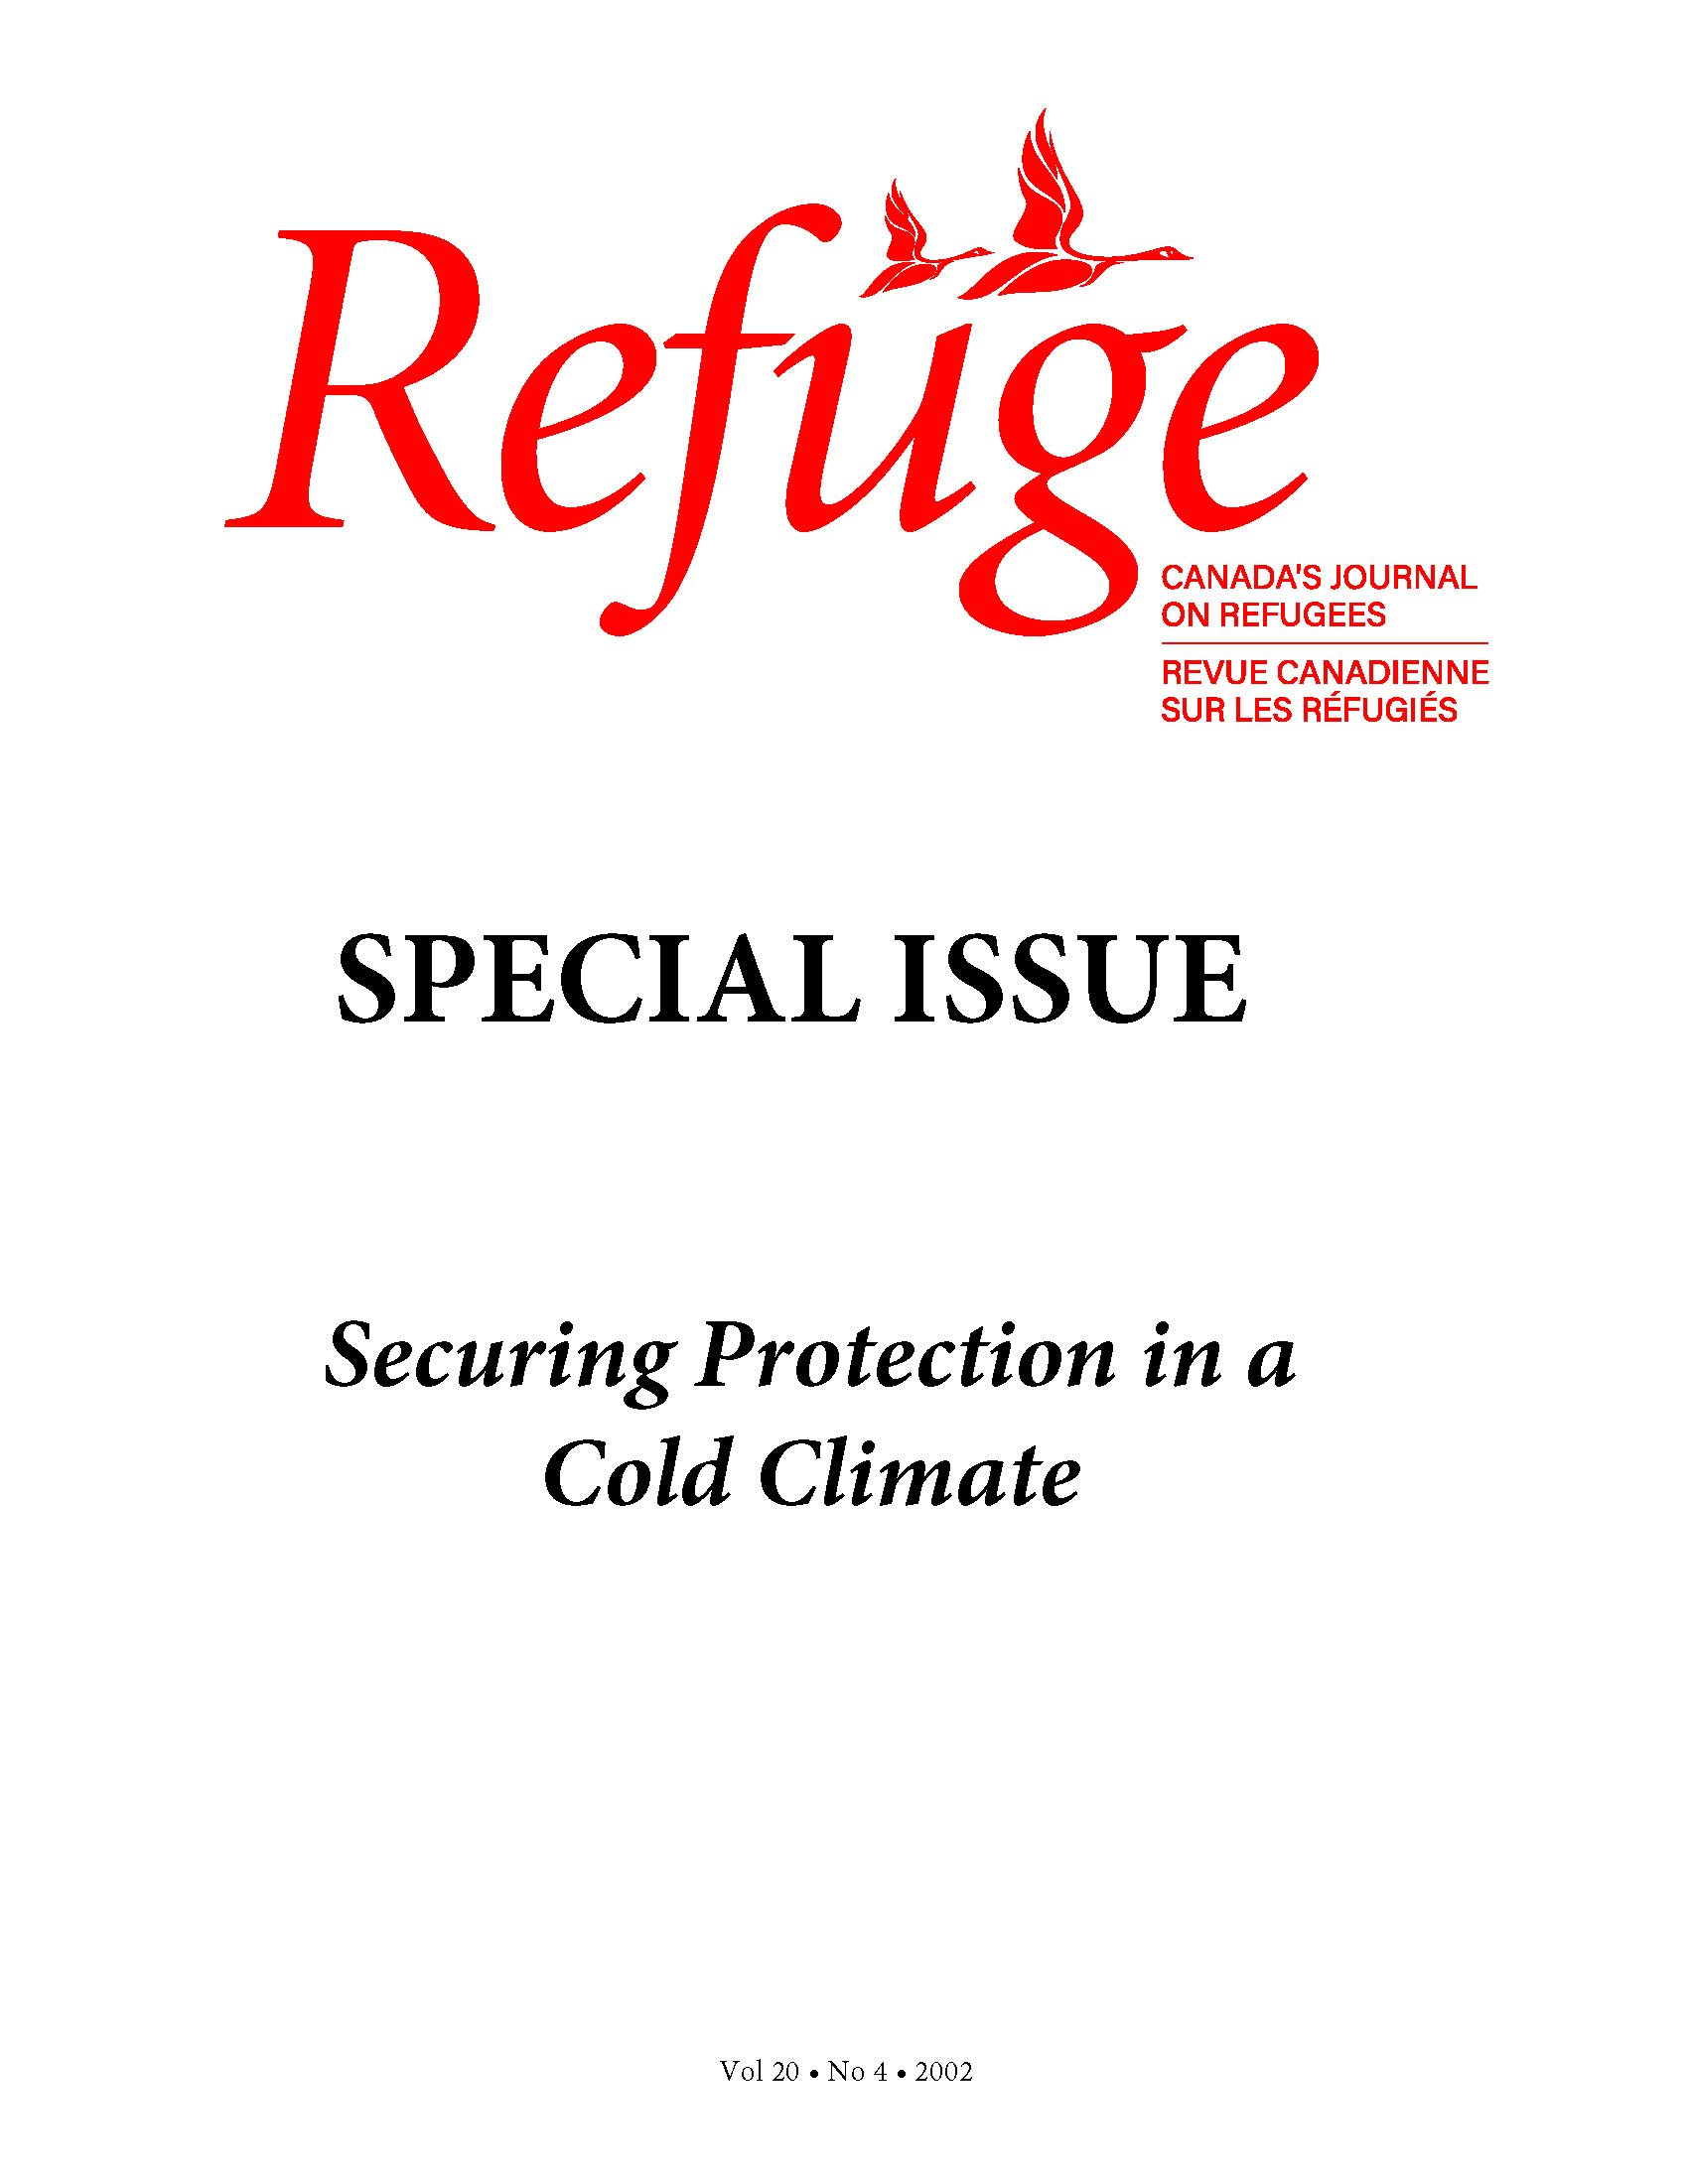 View Vol. 20 No. 4 (2002): Securing Refugee Protection in a Cold Climate